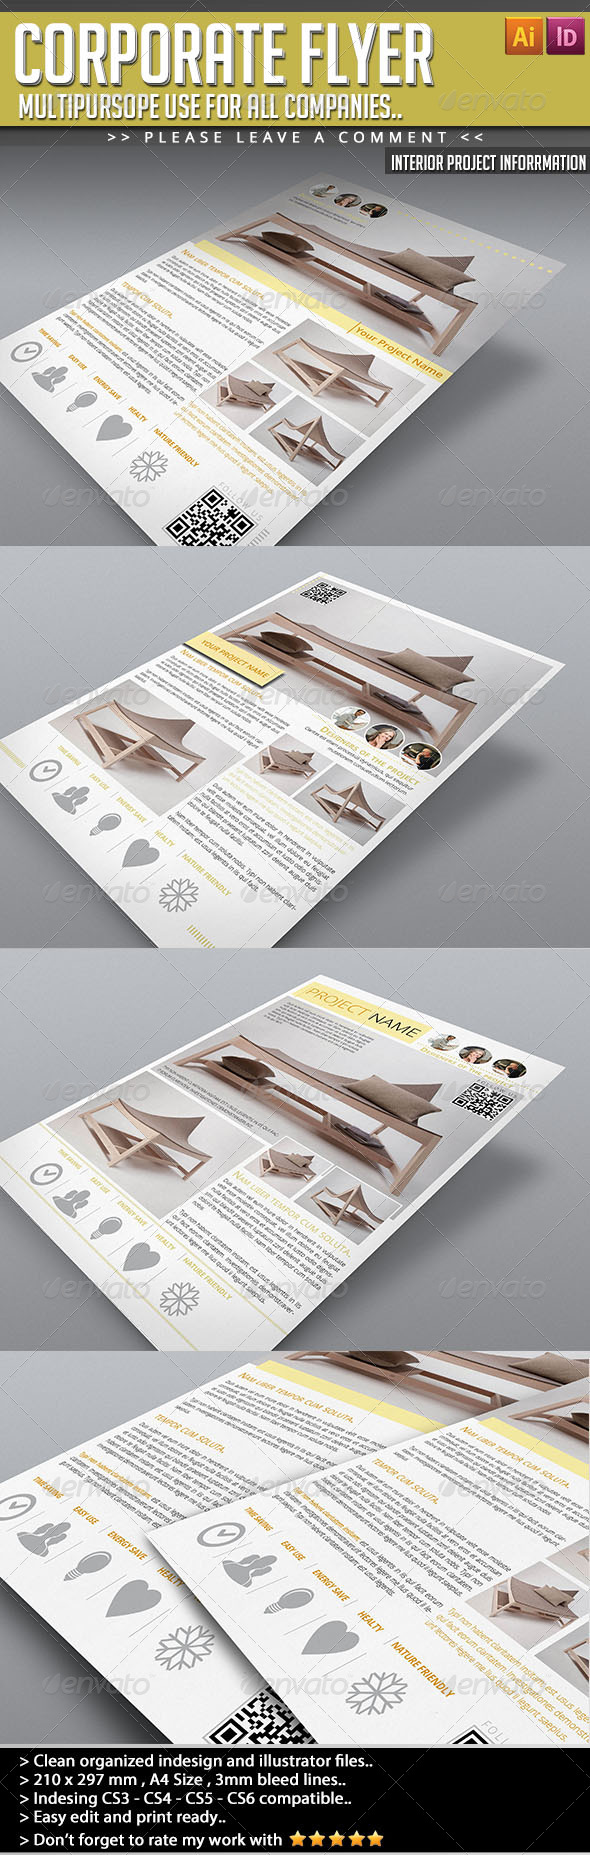 GraphicRiver Corporate Flyer Interior Project Information 4658952